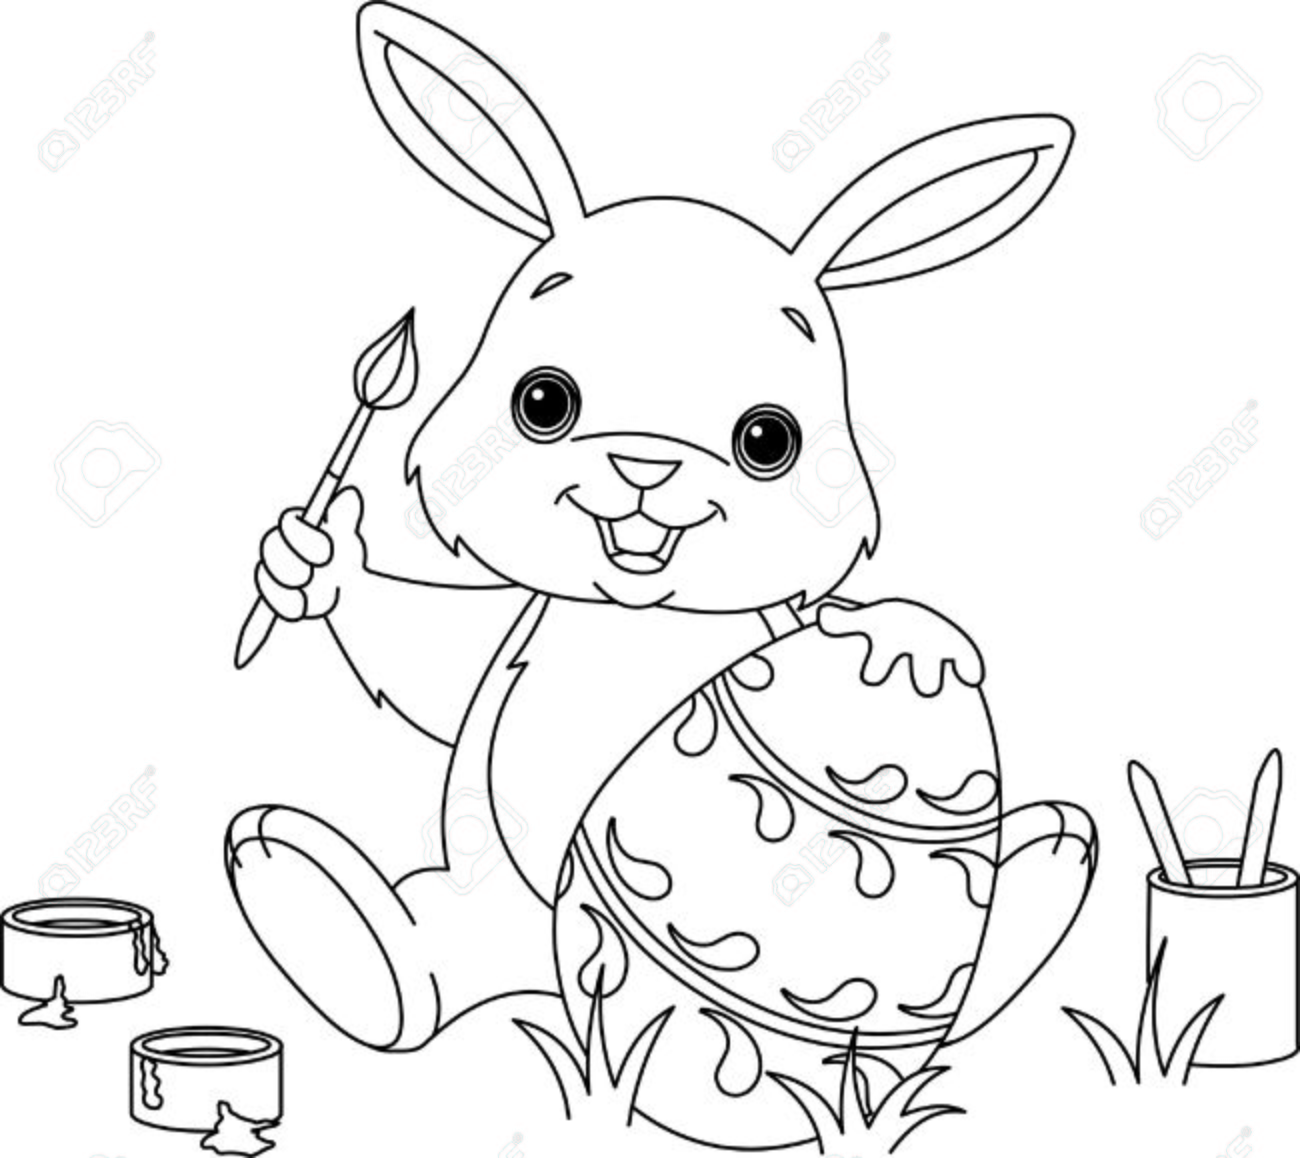 Finest Cheap Coloring Page Bunny Easter Pages Campfire With Bunnies